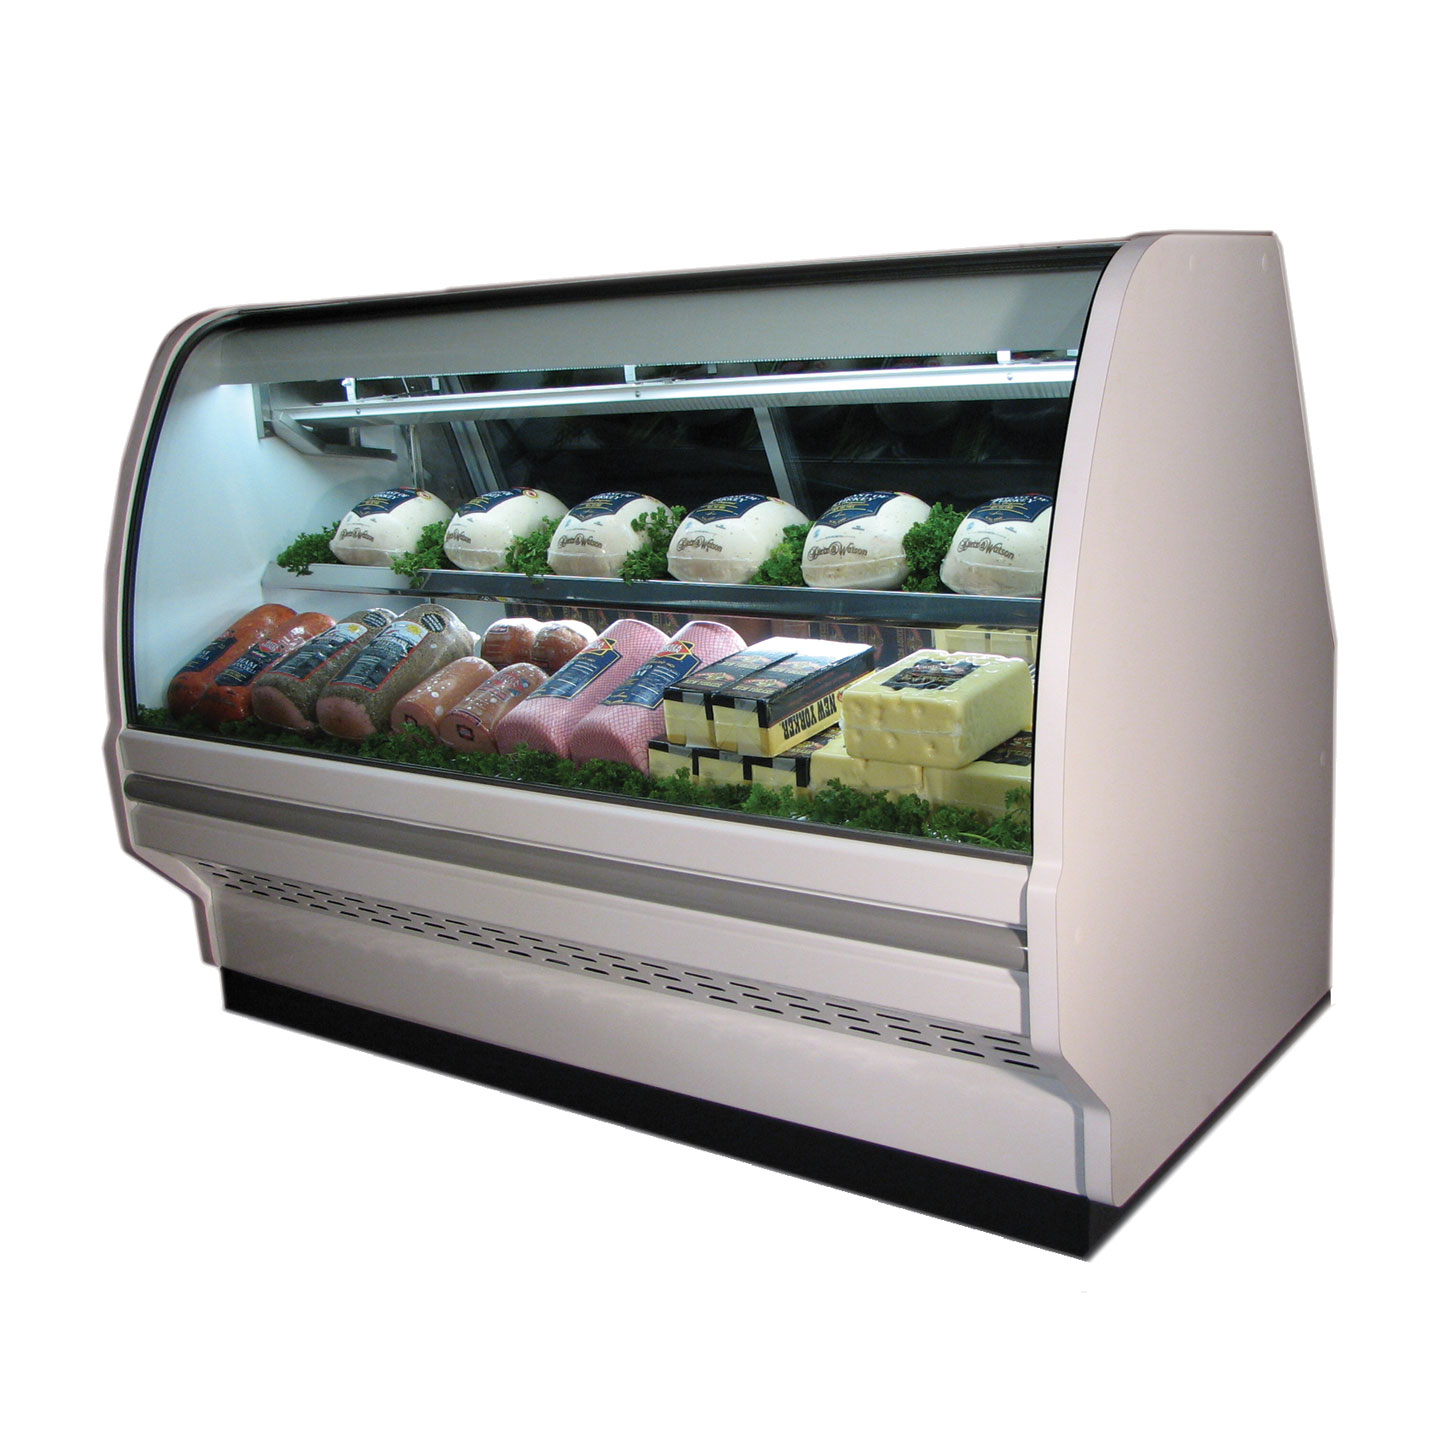 Howard-McCray SC-CDS40E-6C-S-LED display case, refrigerated deli